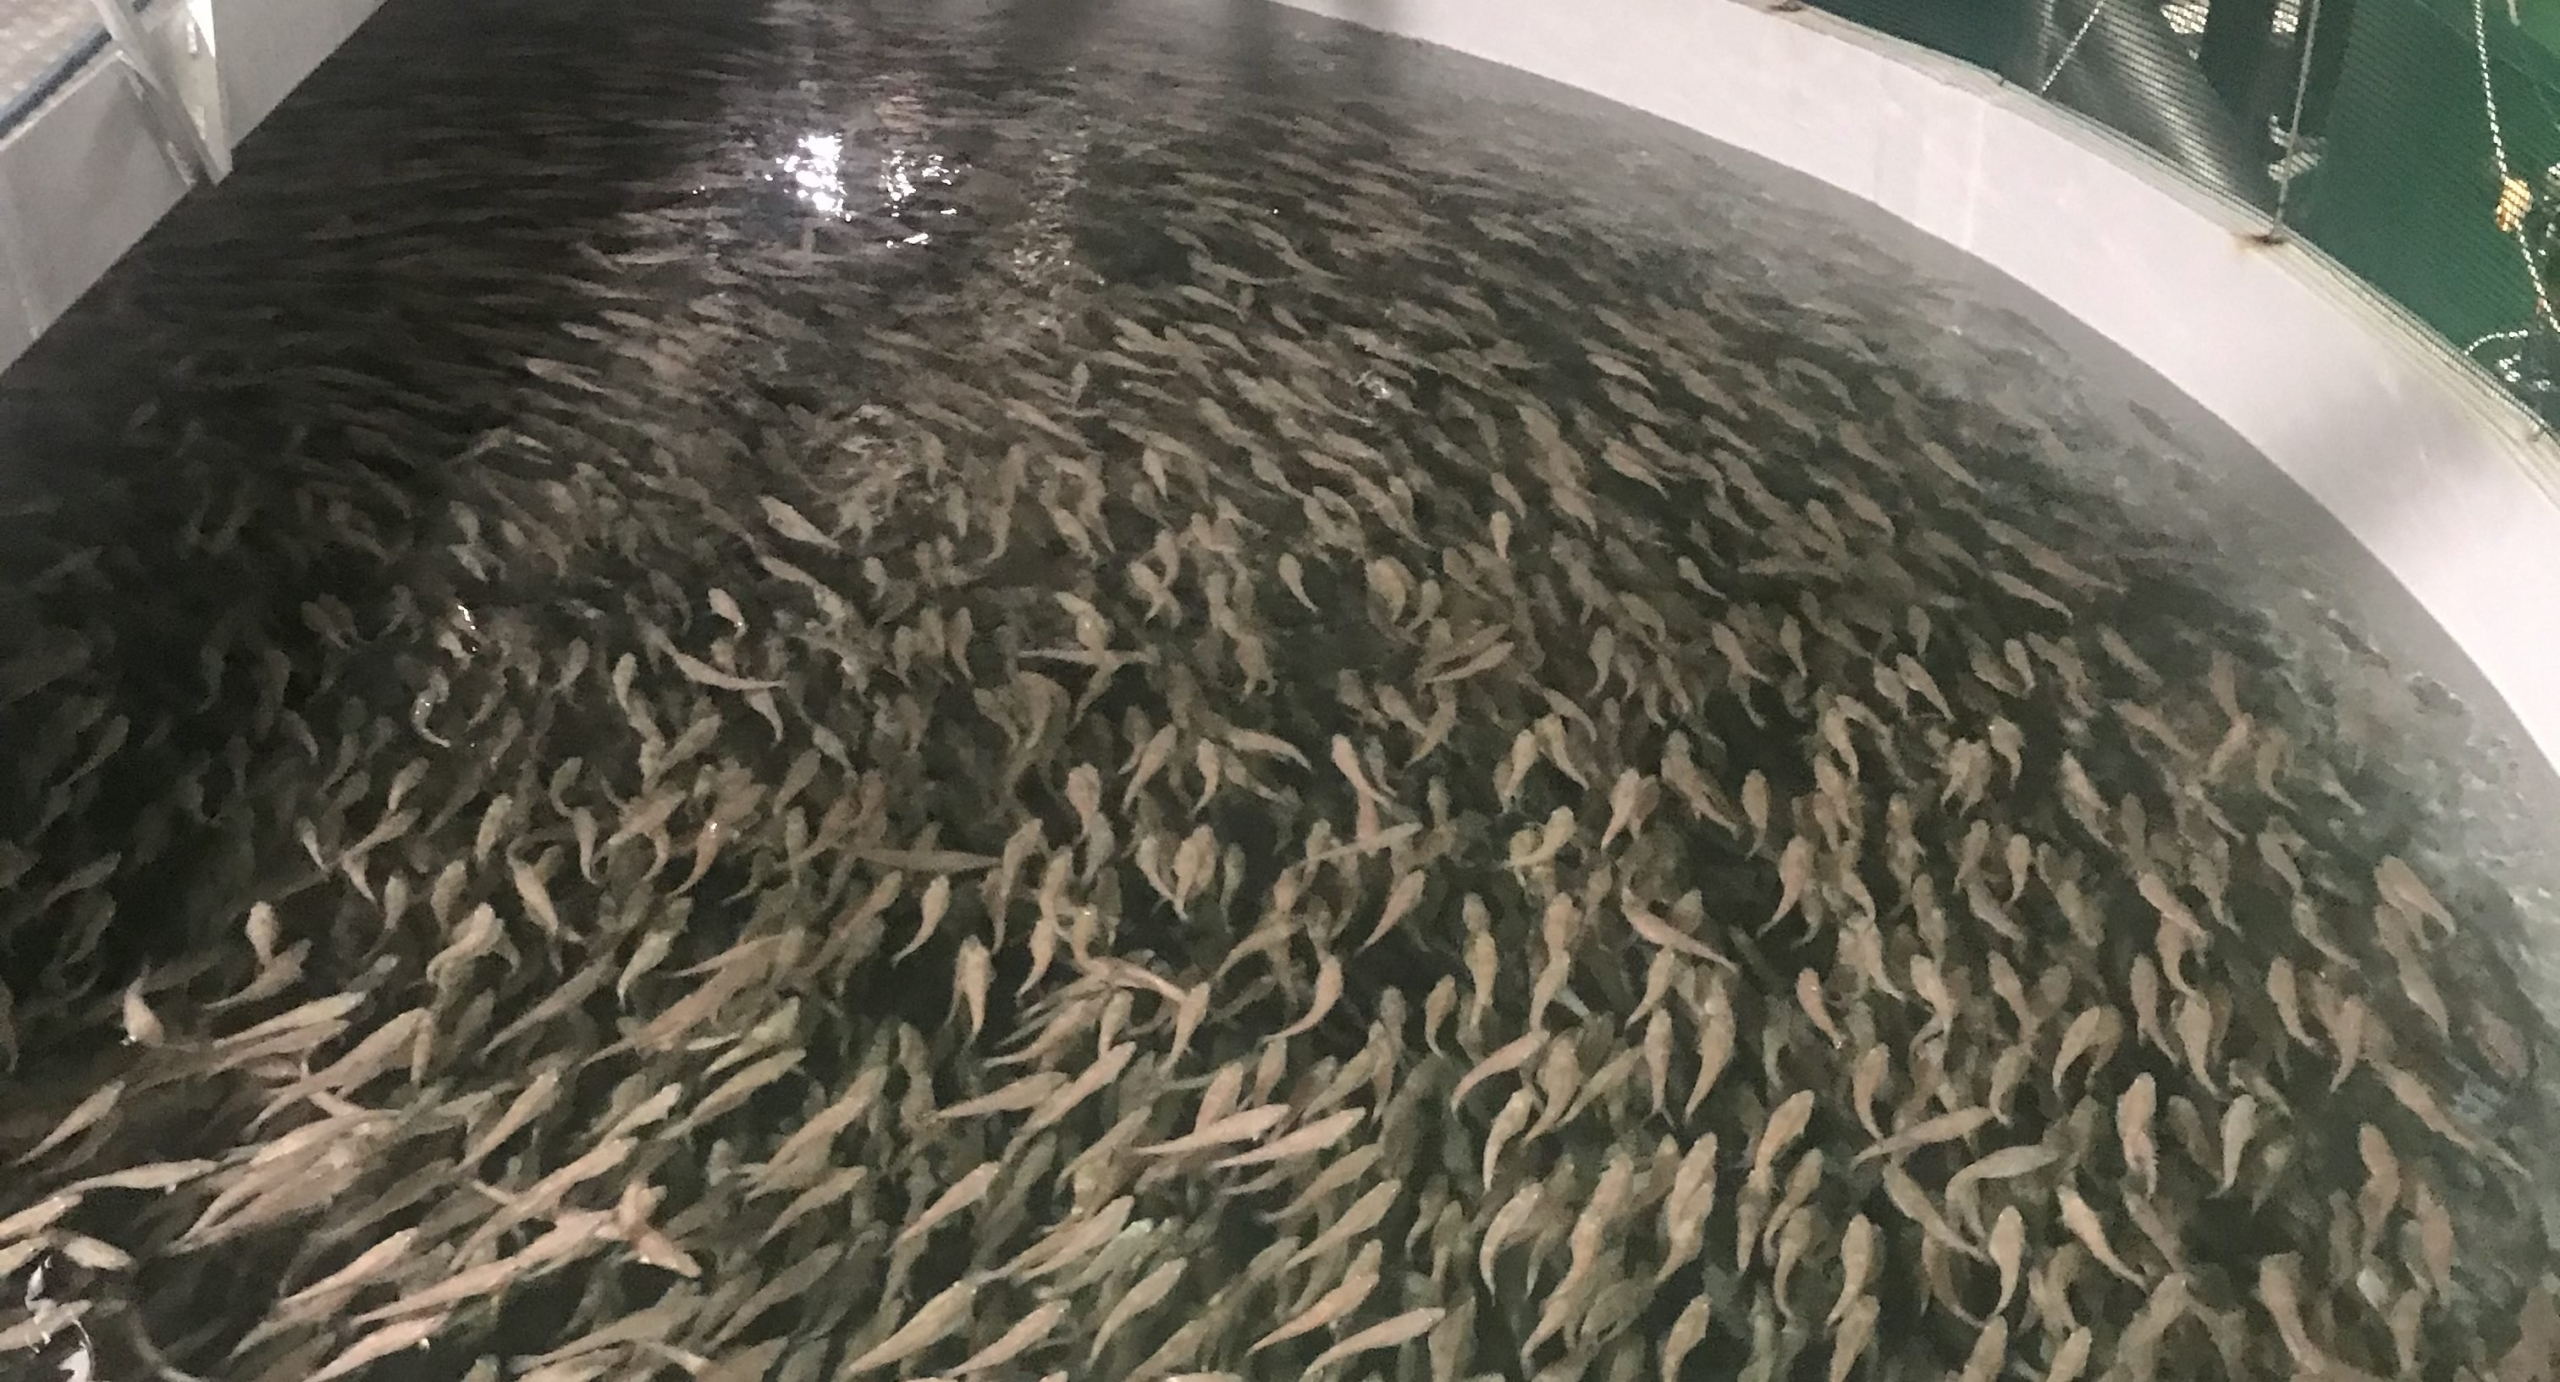 Norcod cod farm in norway